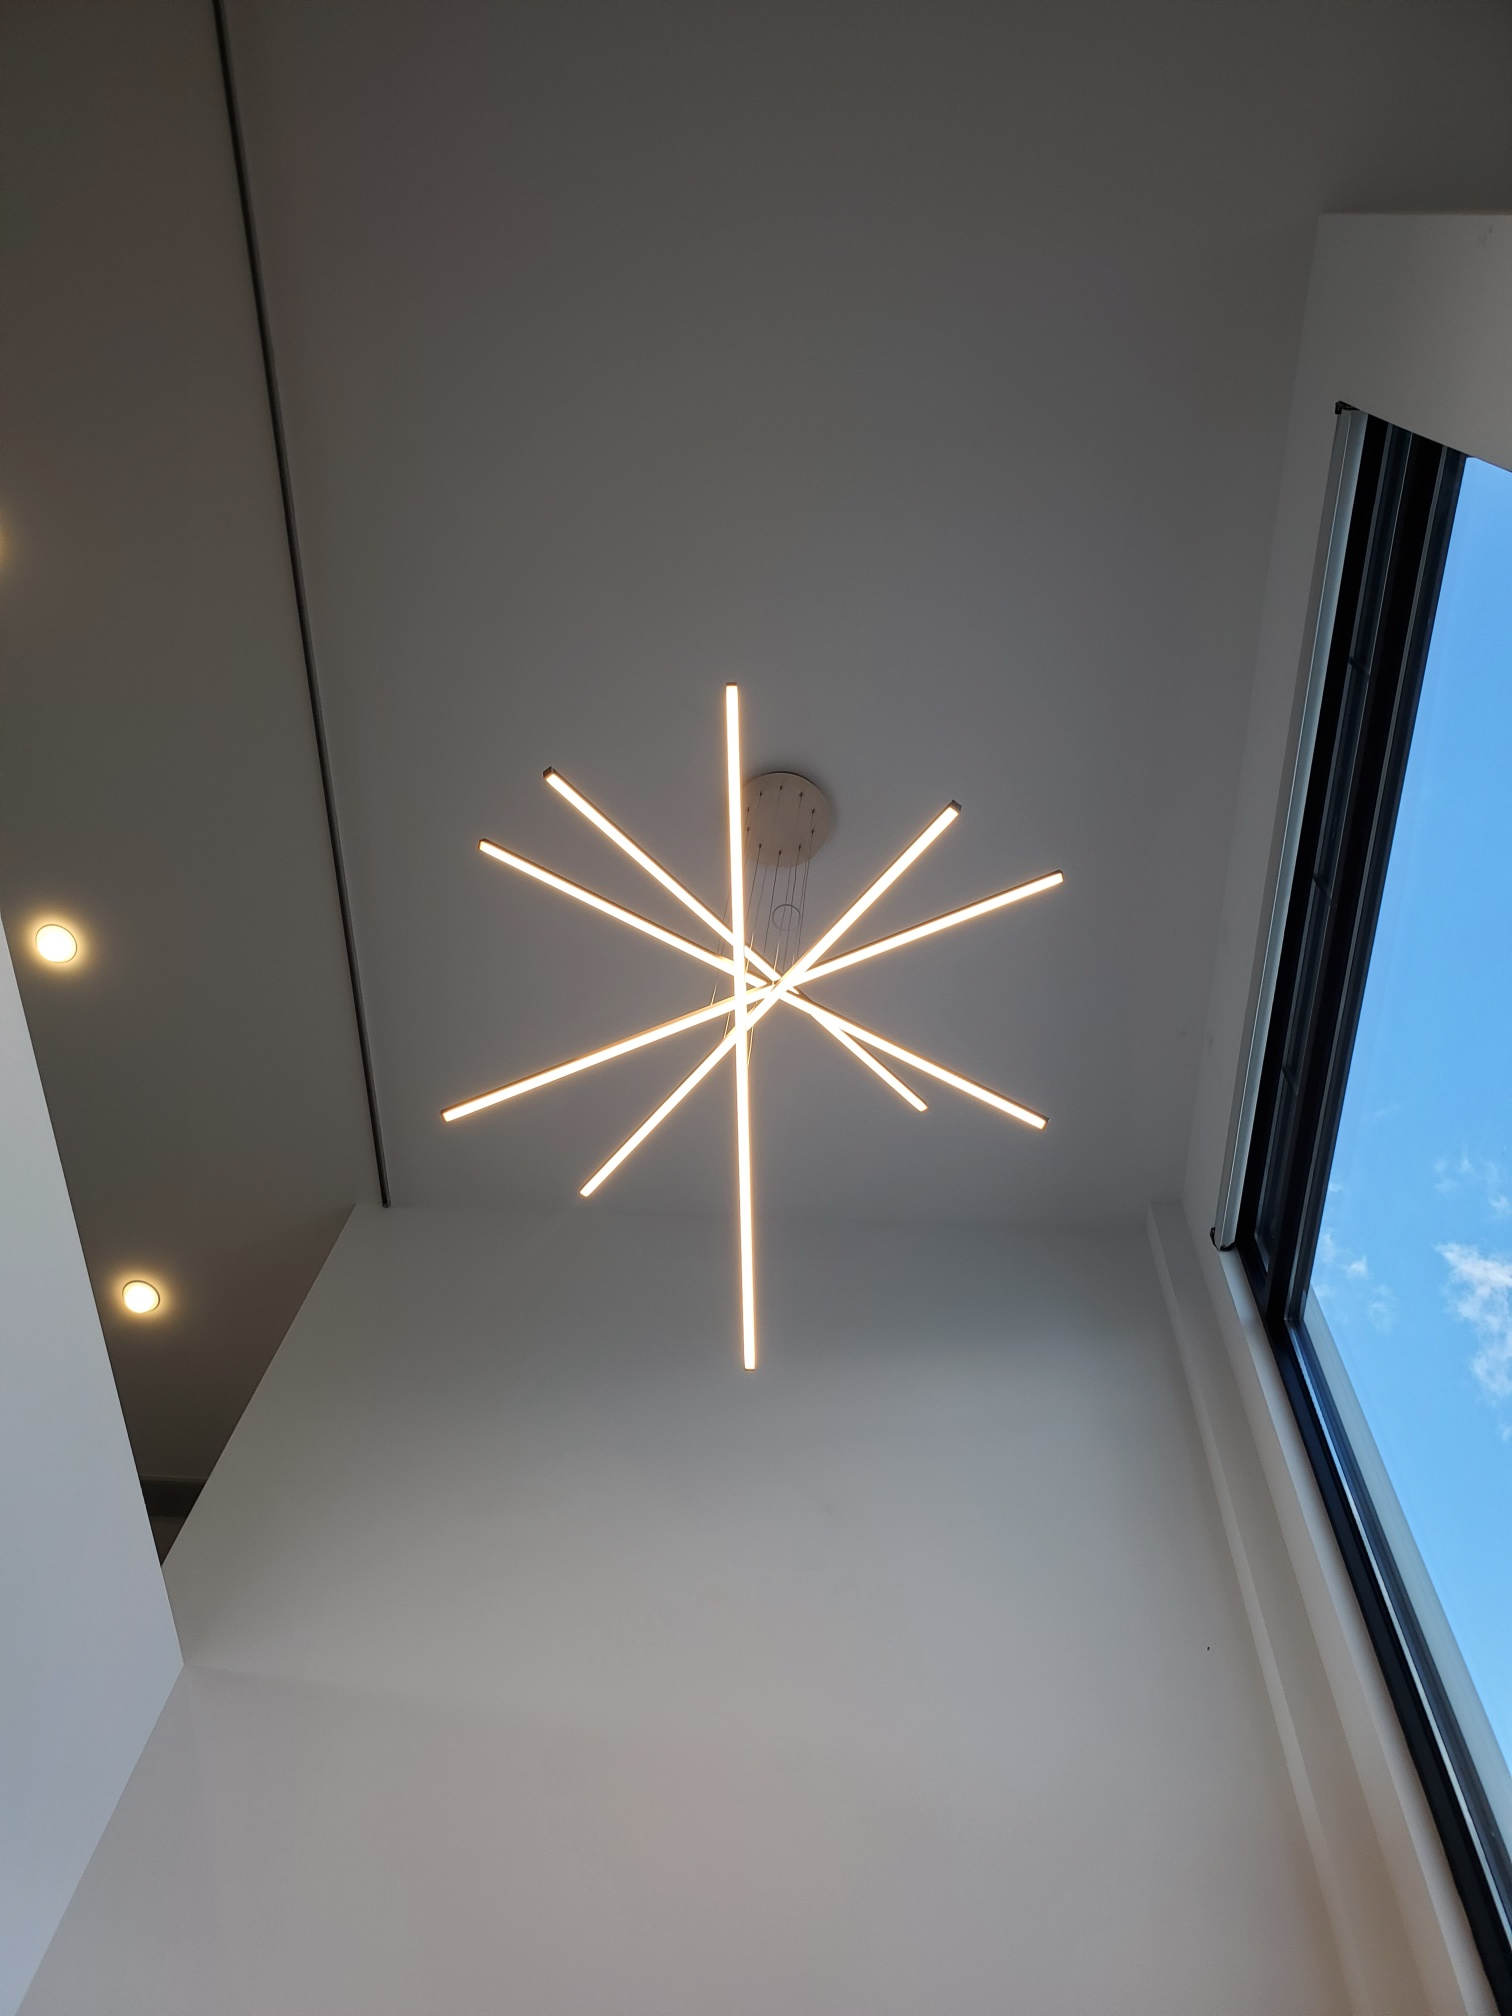 Specialty LED lighting with a custom fixture and recessed accent lighting